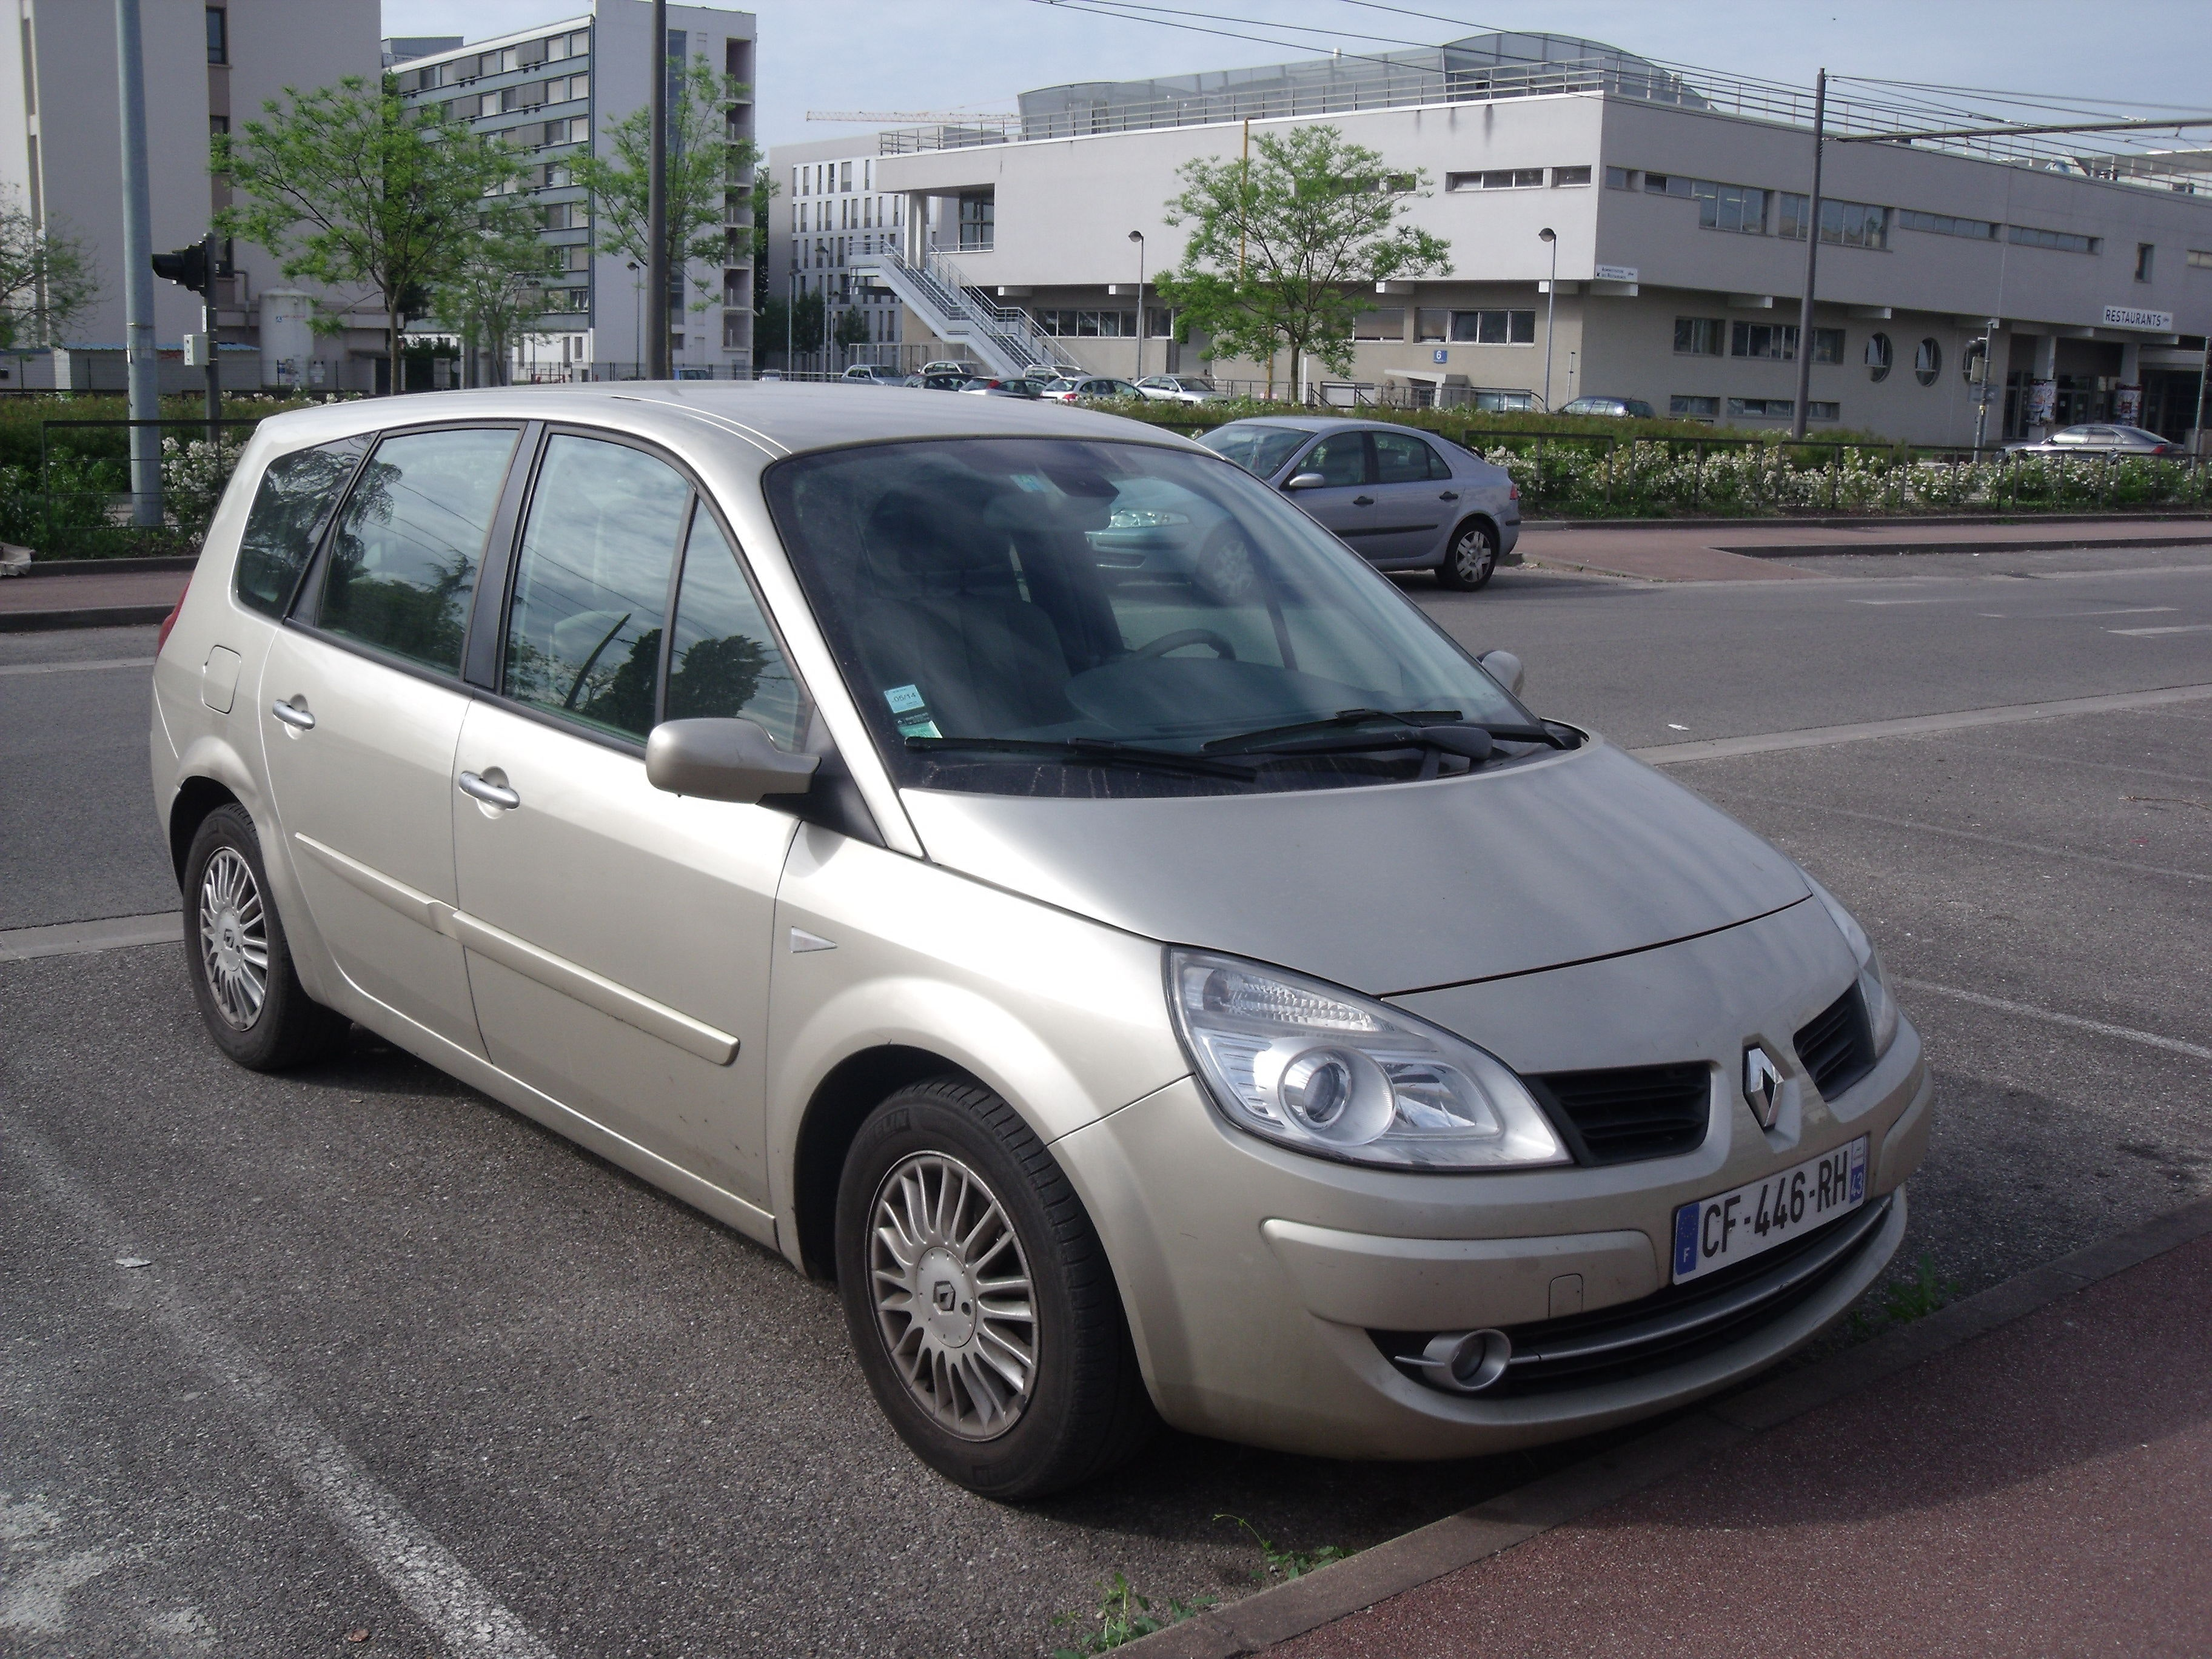 Renault Grand Scénic II 1.9 dCi 130 Luxe Privilège, 2007, Diesel, 7 places